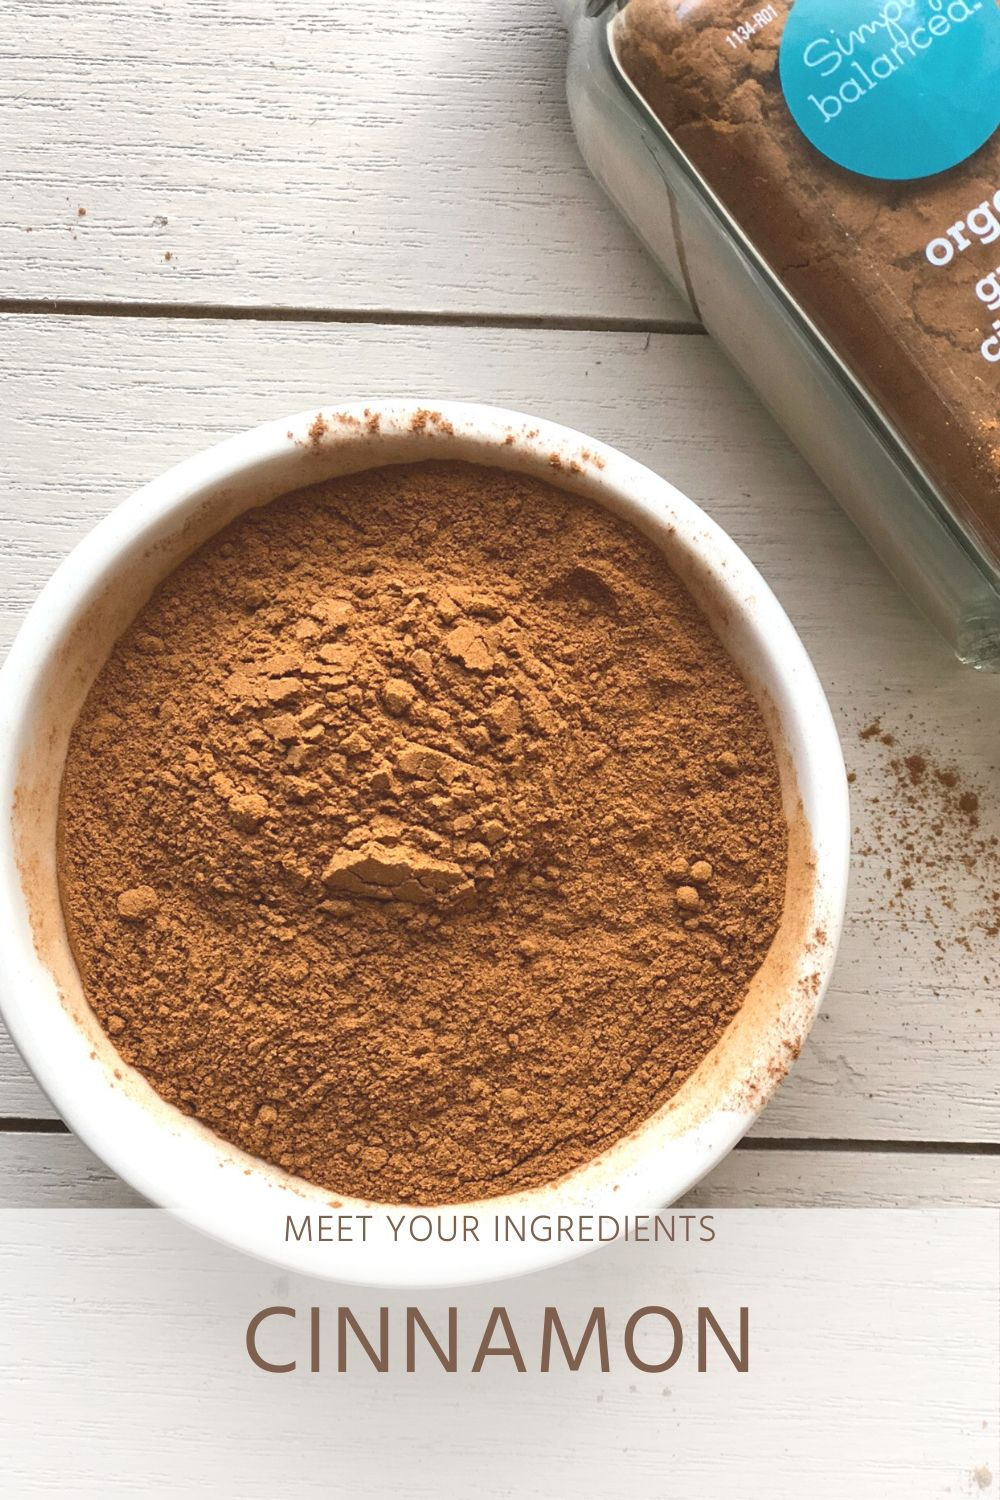 Meet Your Ingredients: Cinnamon